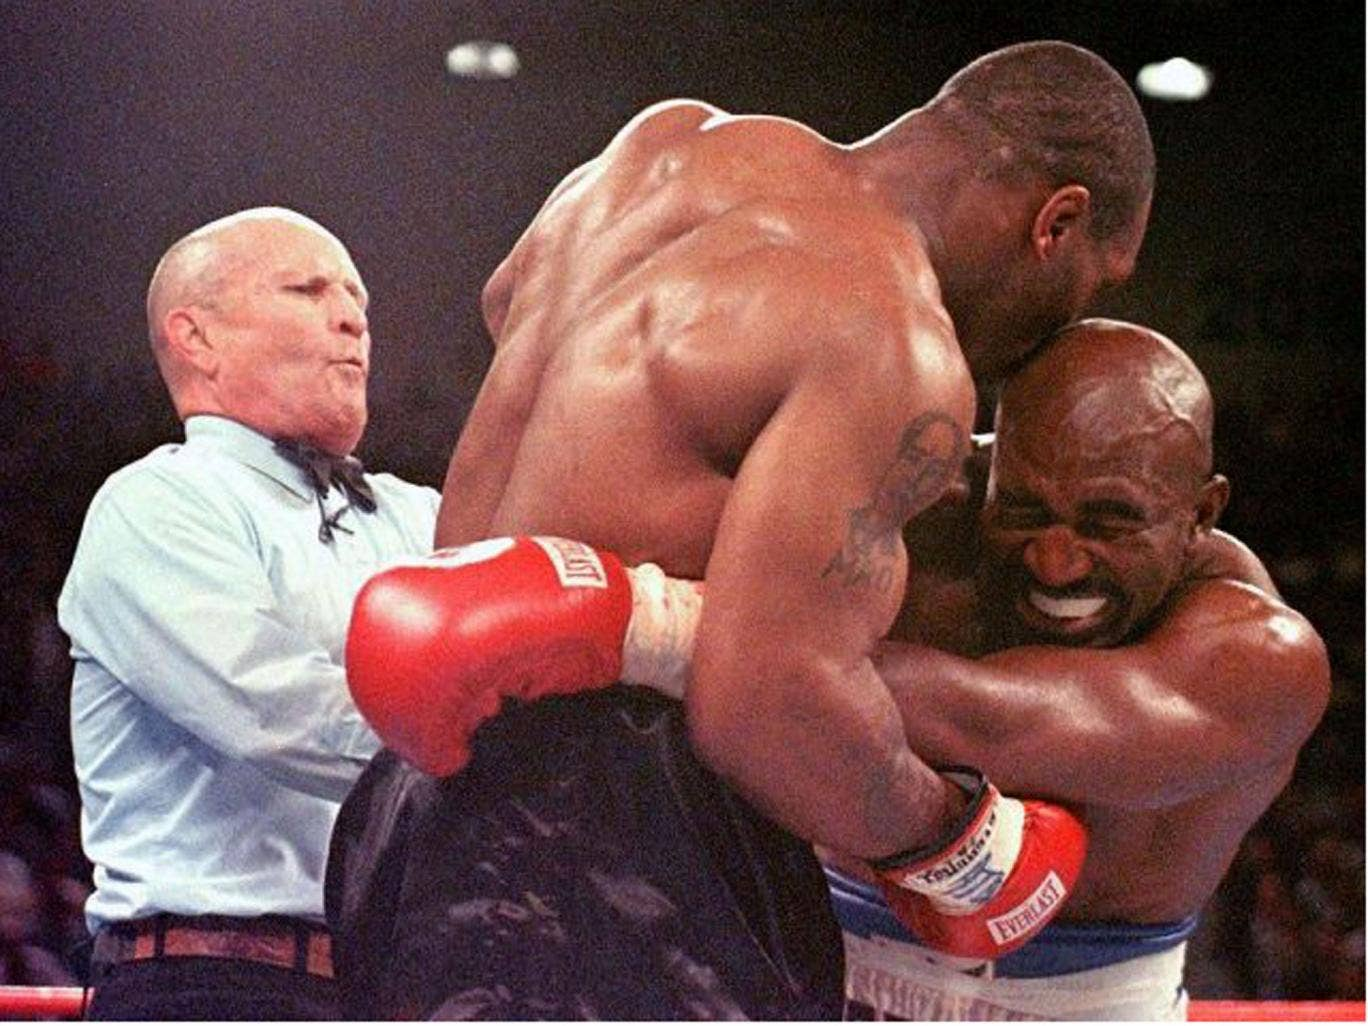 The referee Mills Lane intervenes after Mike Tyson bit Evander Holyfield (right) during their infamous encounter in June 1997